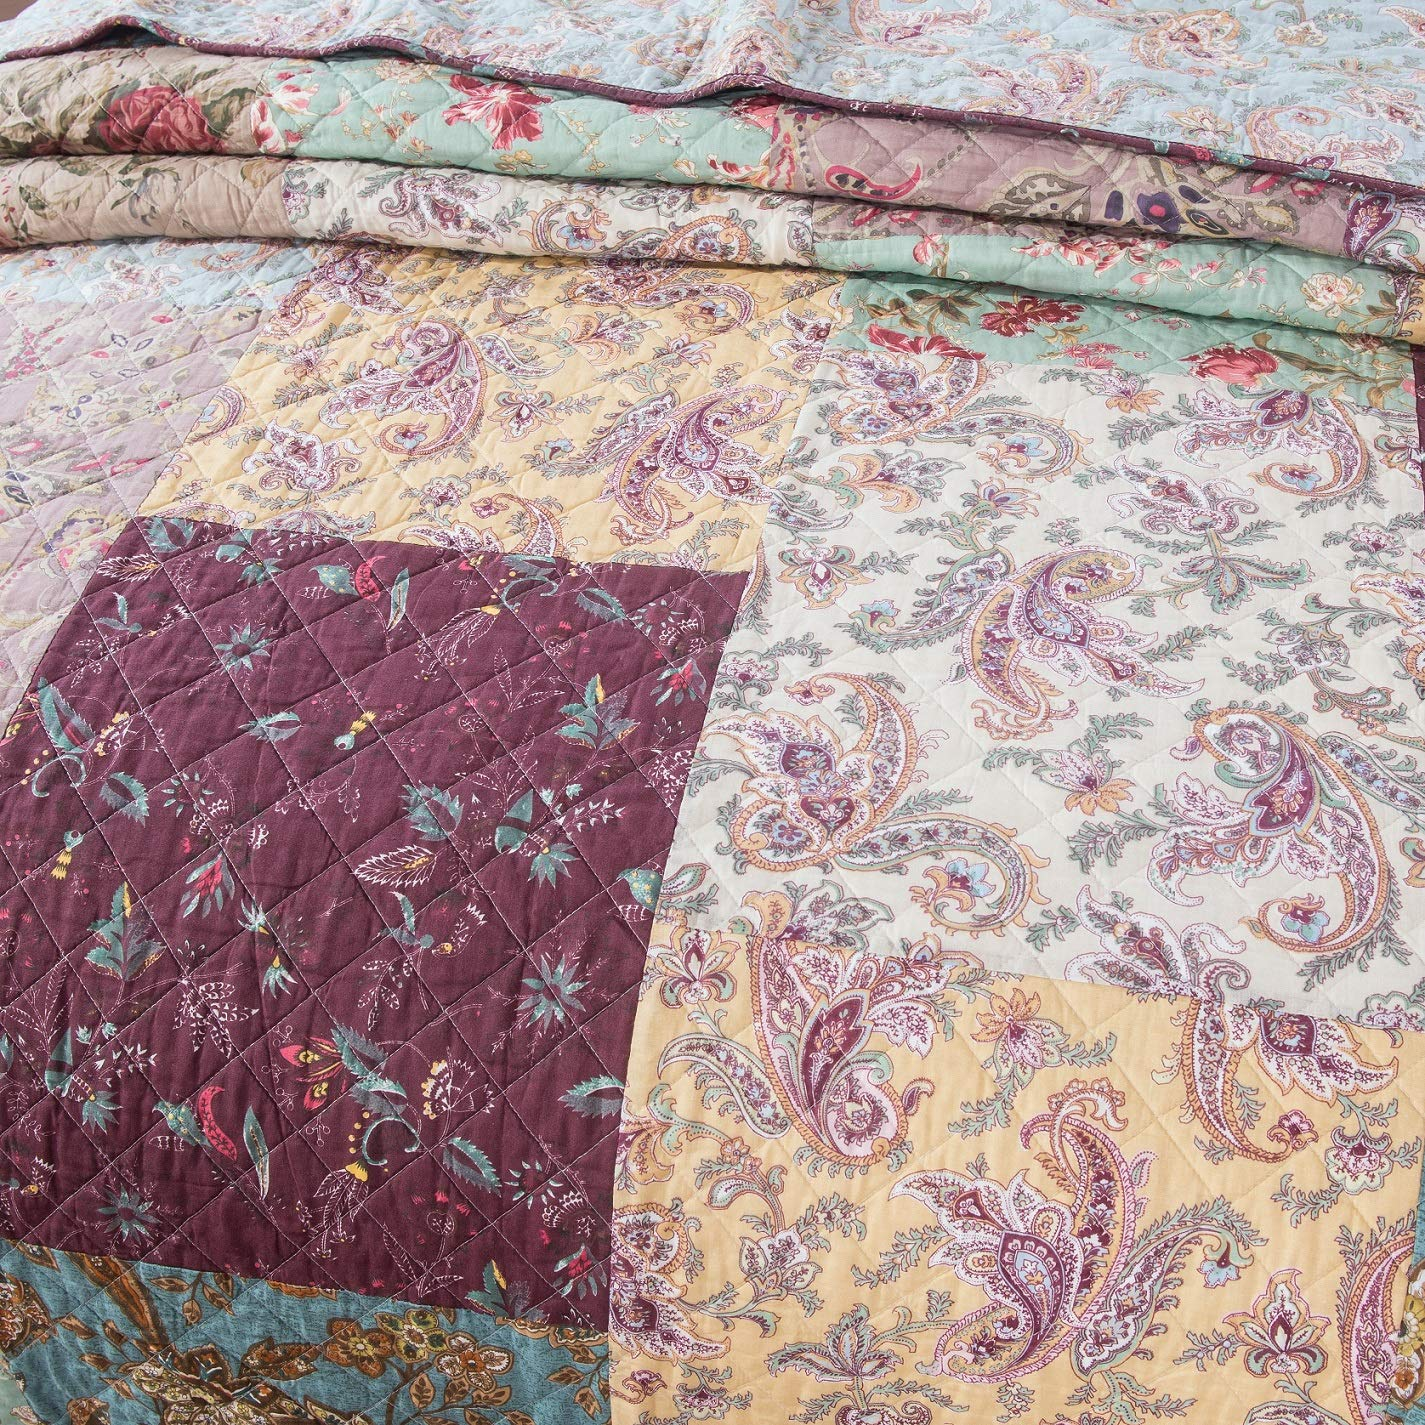 DaDa Bedding Bohemian Patchwork Bedspread - Burgundy Wine Velvety Trim - Vintage Floral Roses Paisley - Bright Vibrant Multi-Colorful Quilted Set - Queen - 3-Pieces by DaDa Bedding Collection (Image #4)